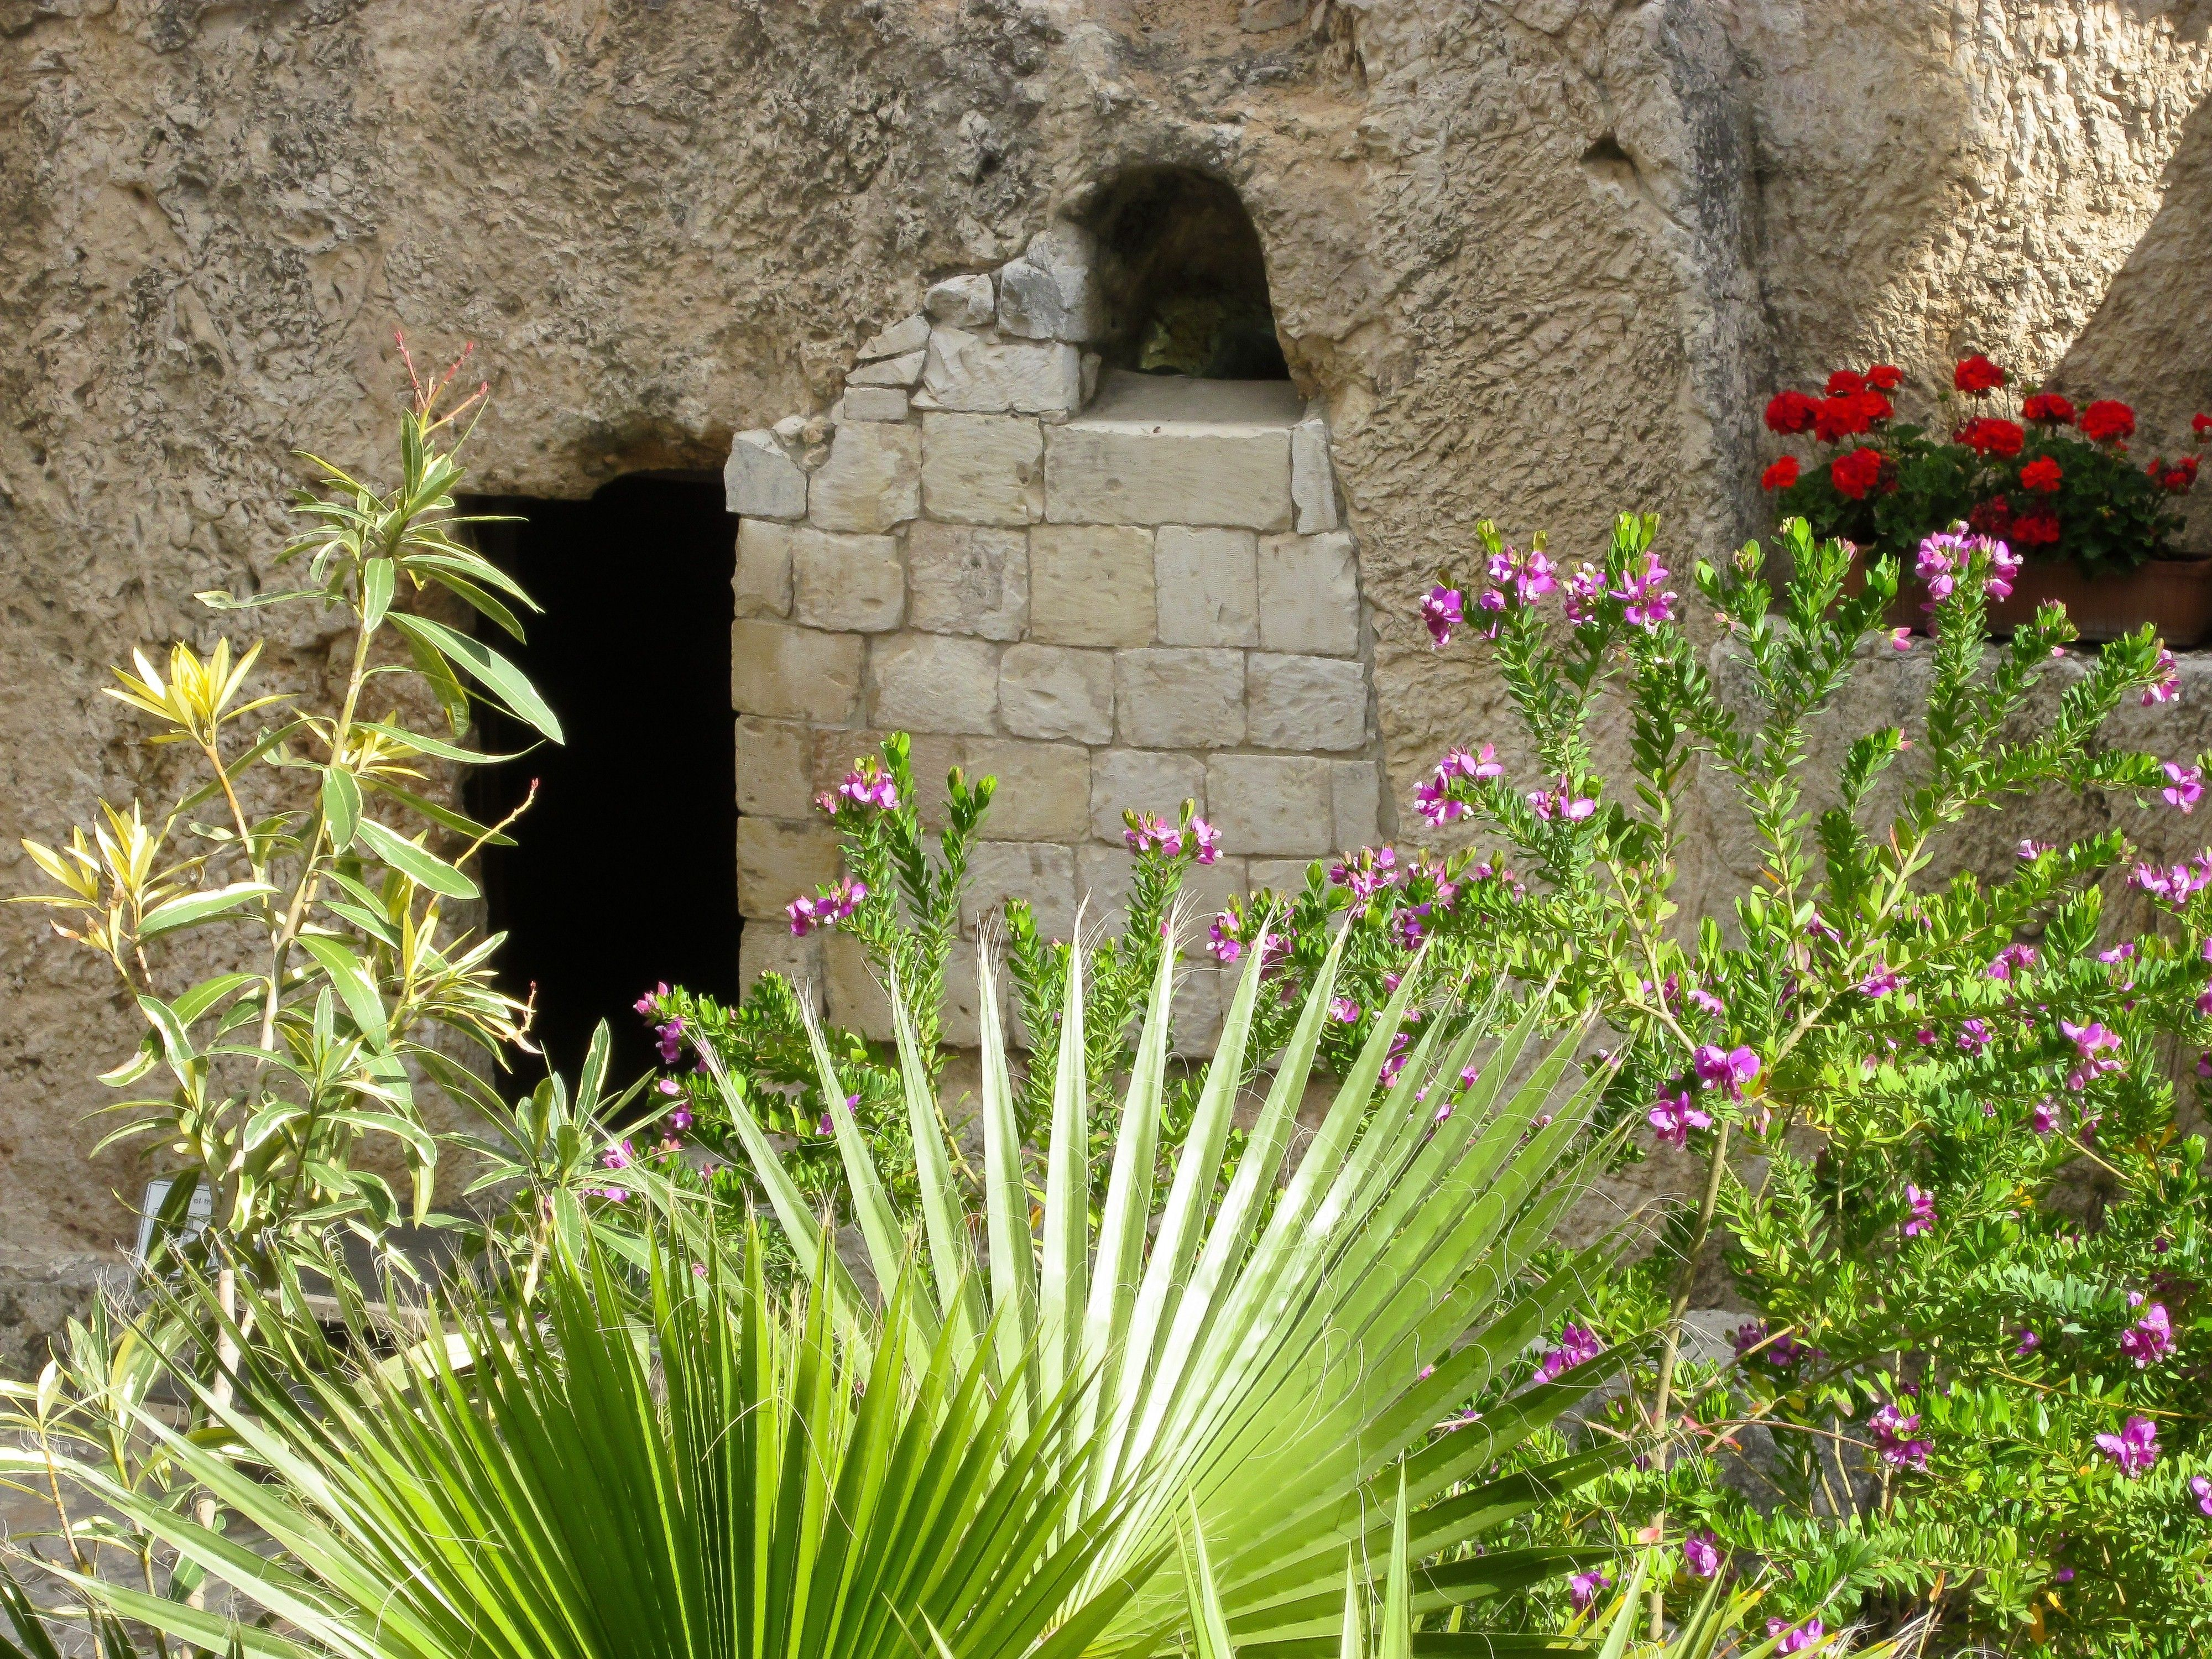 The entrance to the Garden Tomb amid native plants and flowers.